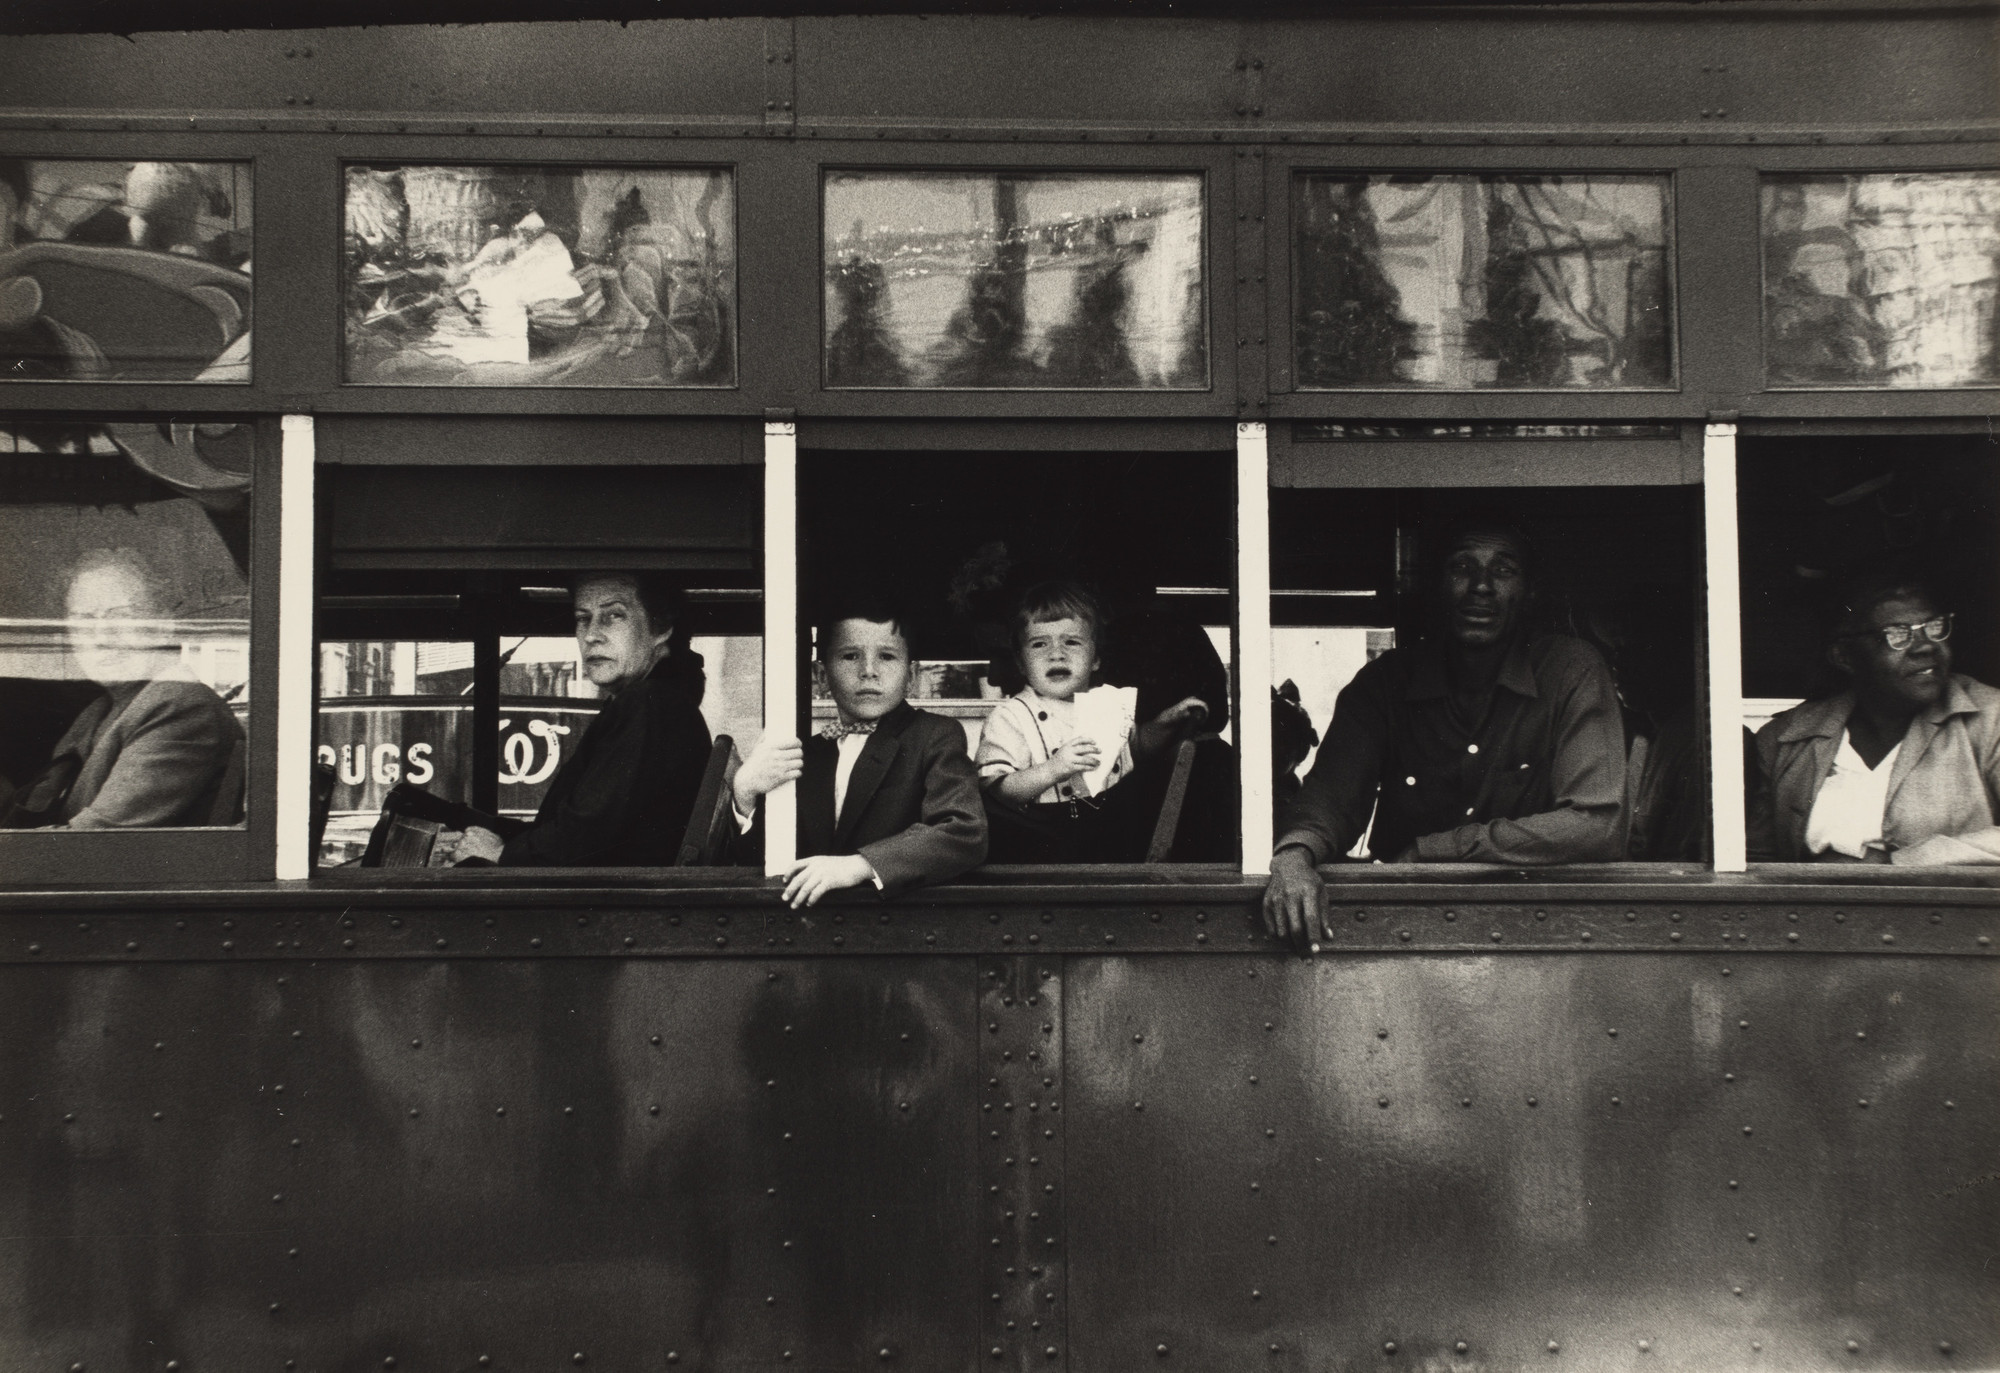 Robert Frank. Trolley—New Orleans. 1955